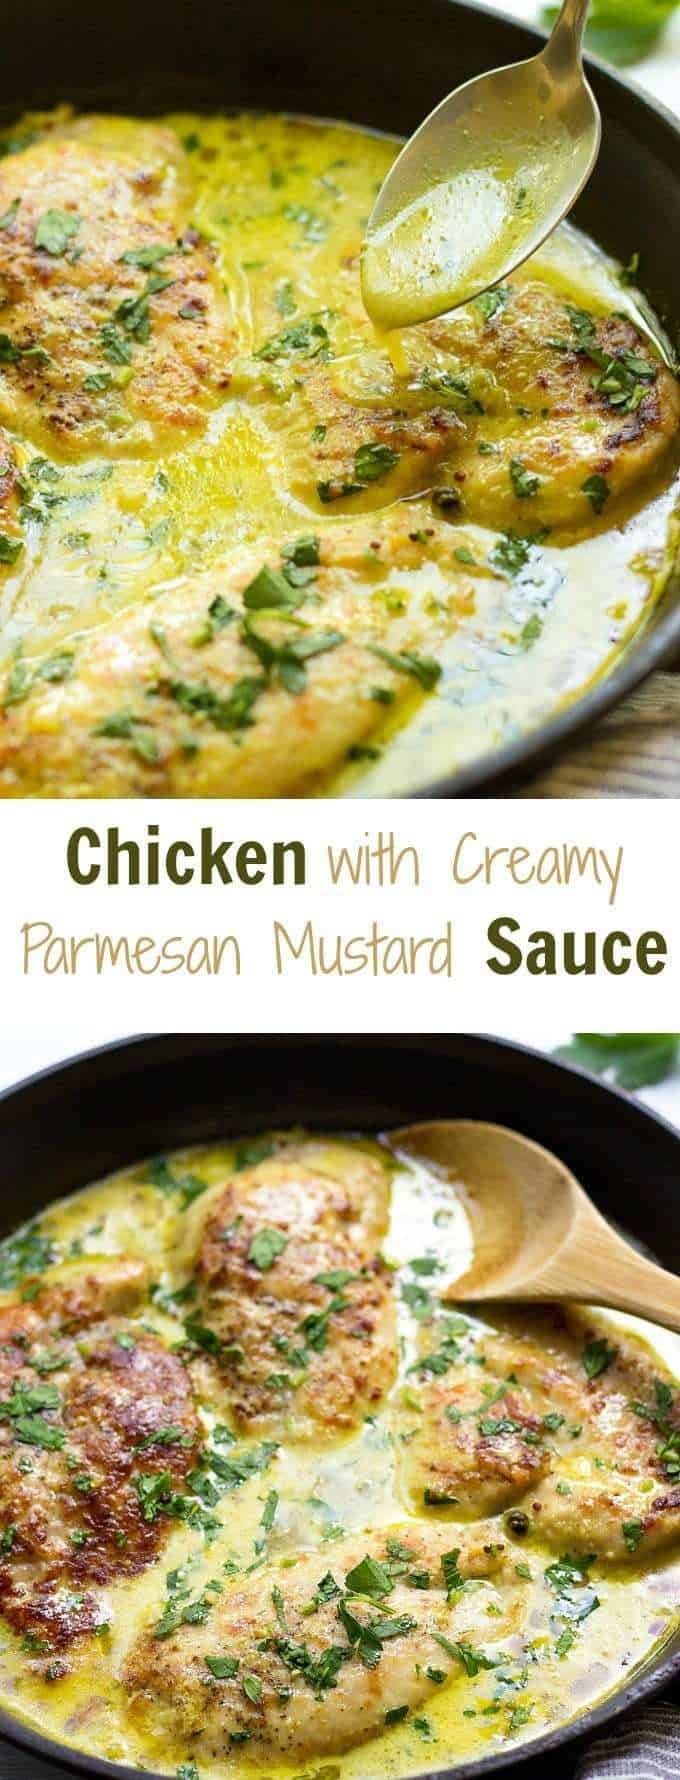 This French Chicken With Creamy Parmesan Mustard Sauce is a love at first bite! Prepared in under 30 Minutes, this Easy Chicken Recipe makes a perfect weeknight meal.